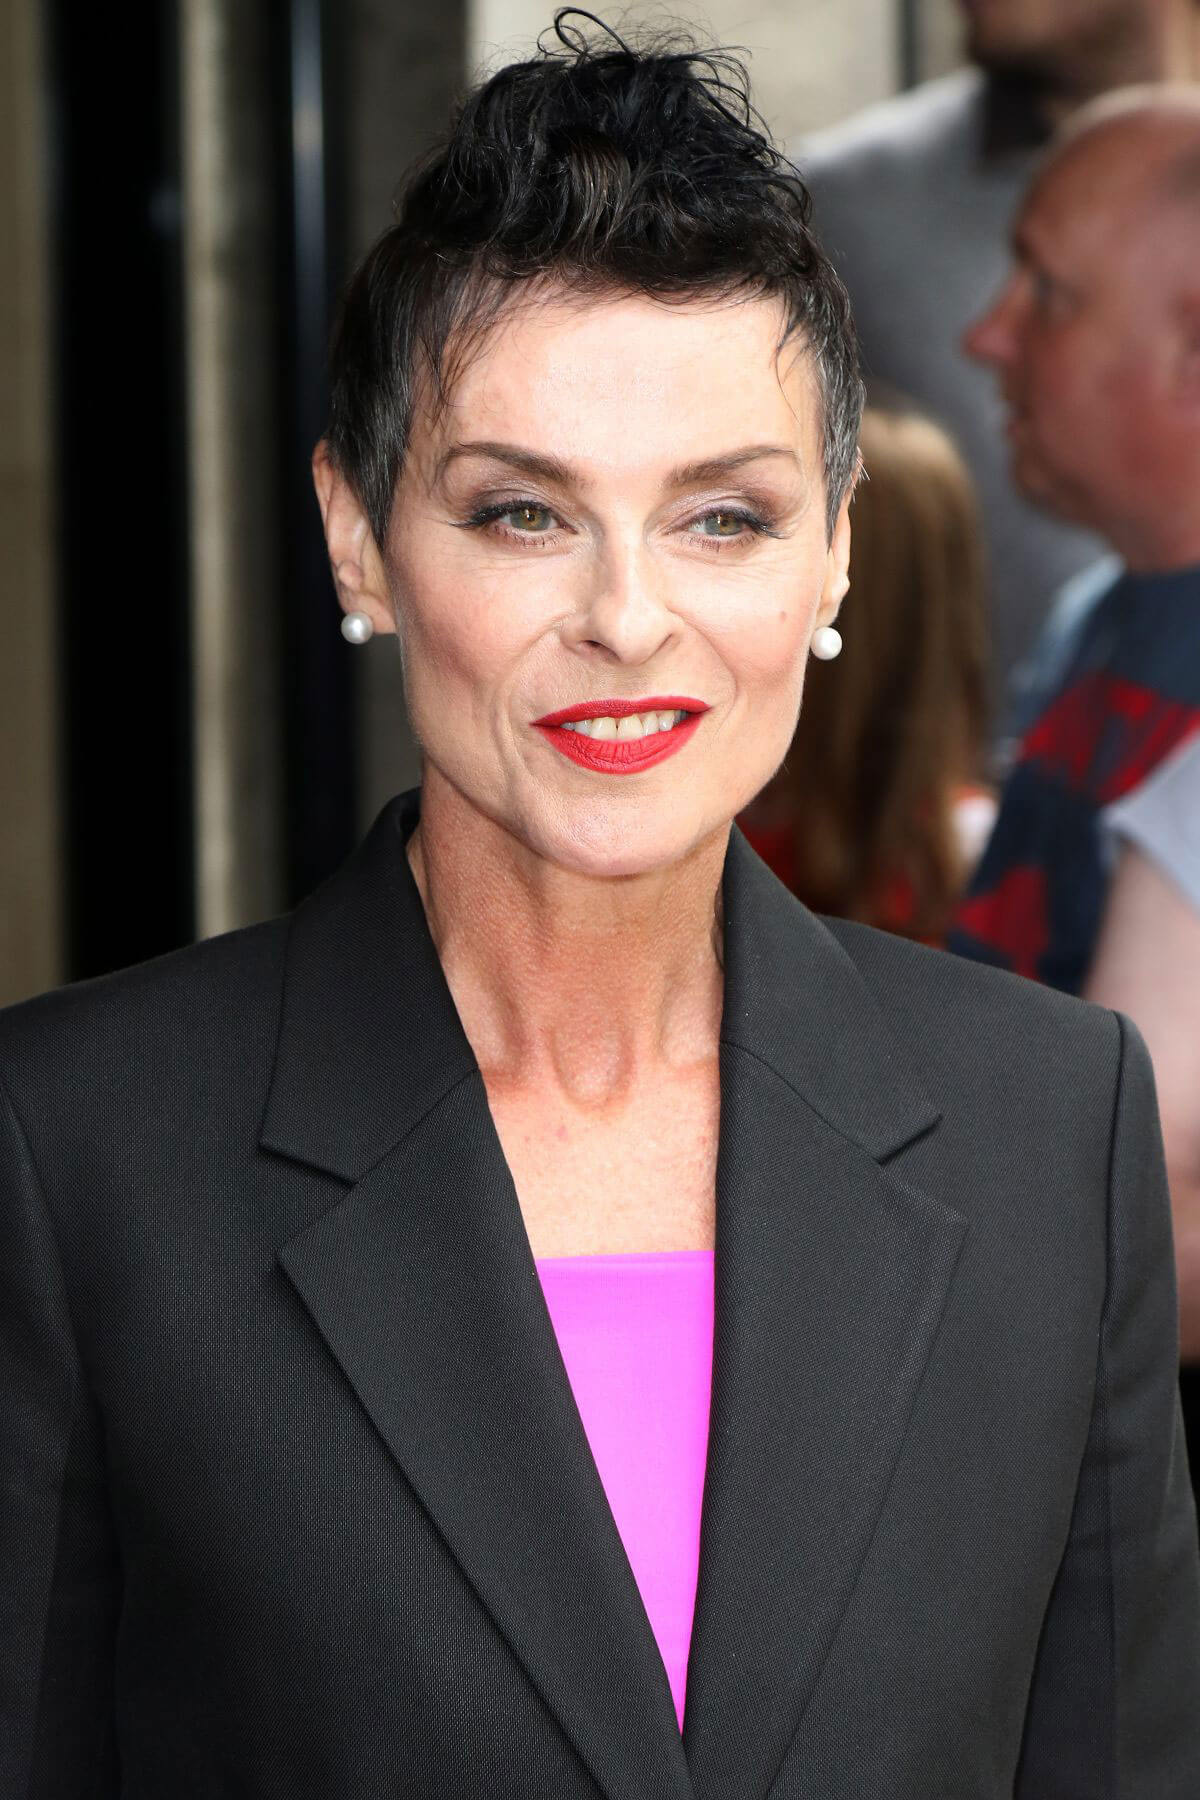 lisa stansfield - photo #37